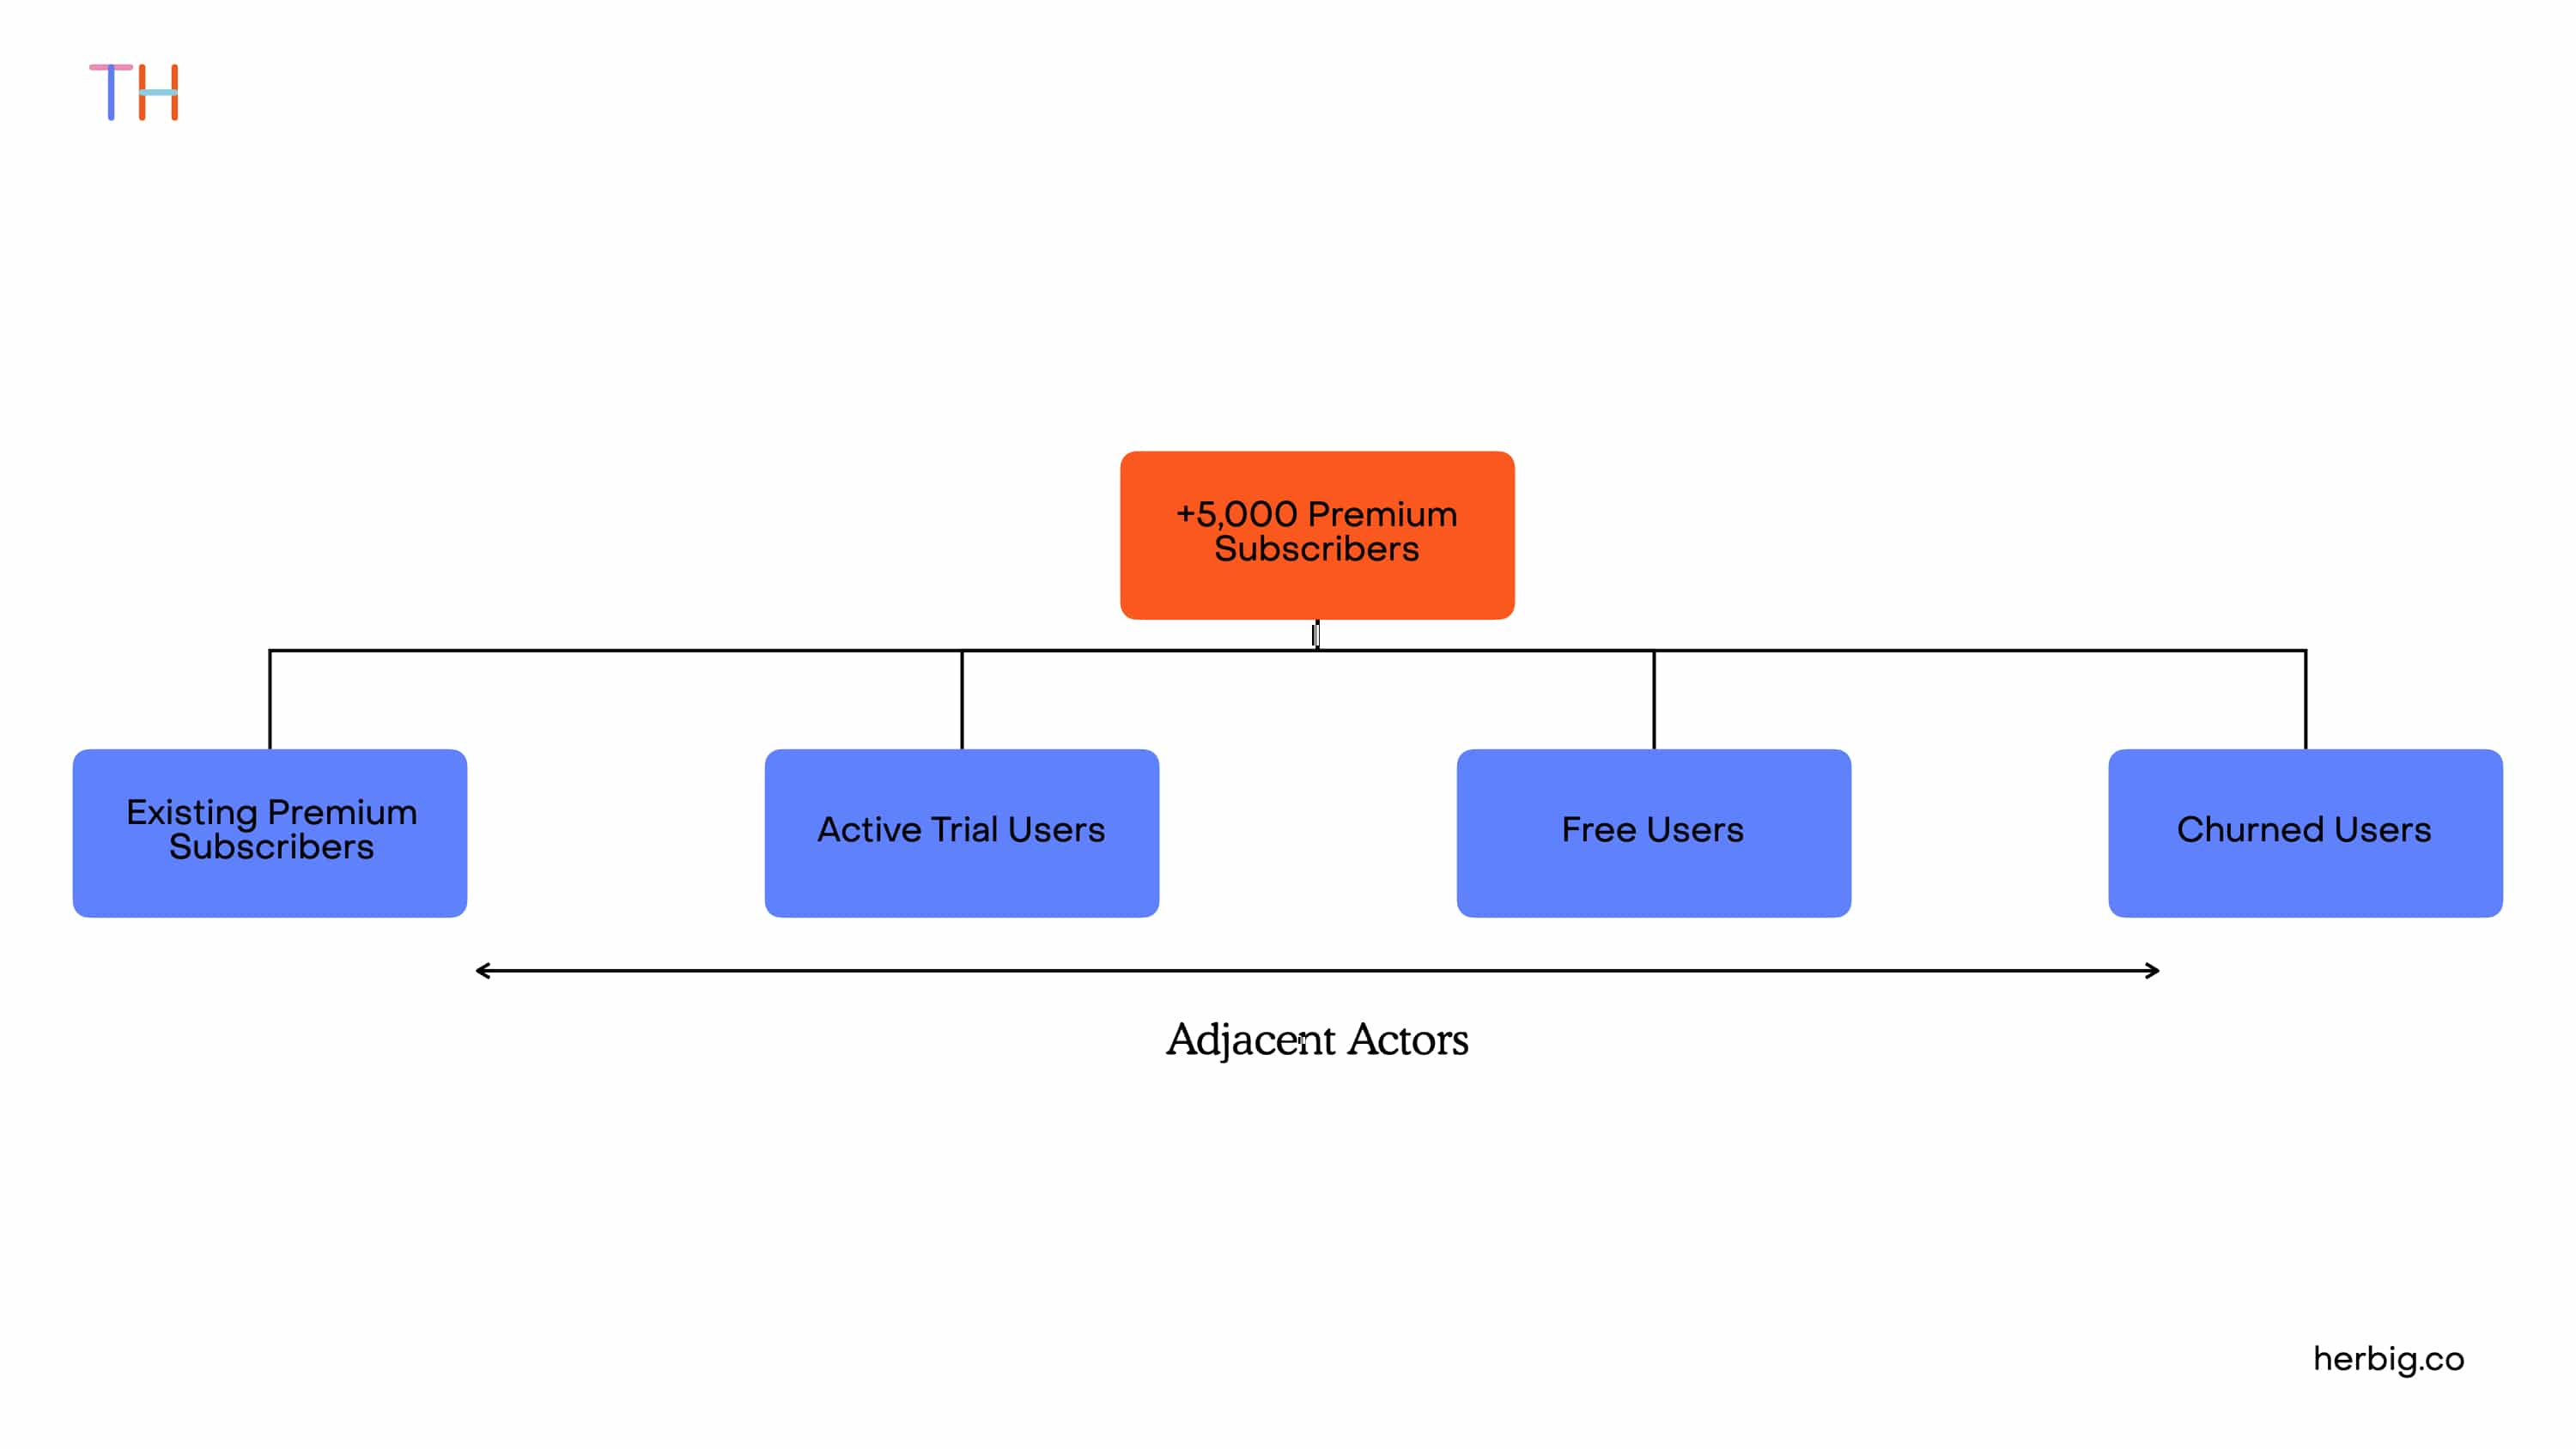 Identifying Adjacent Actors during Product Discovery using Impact Mapping